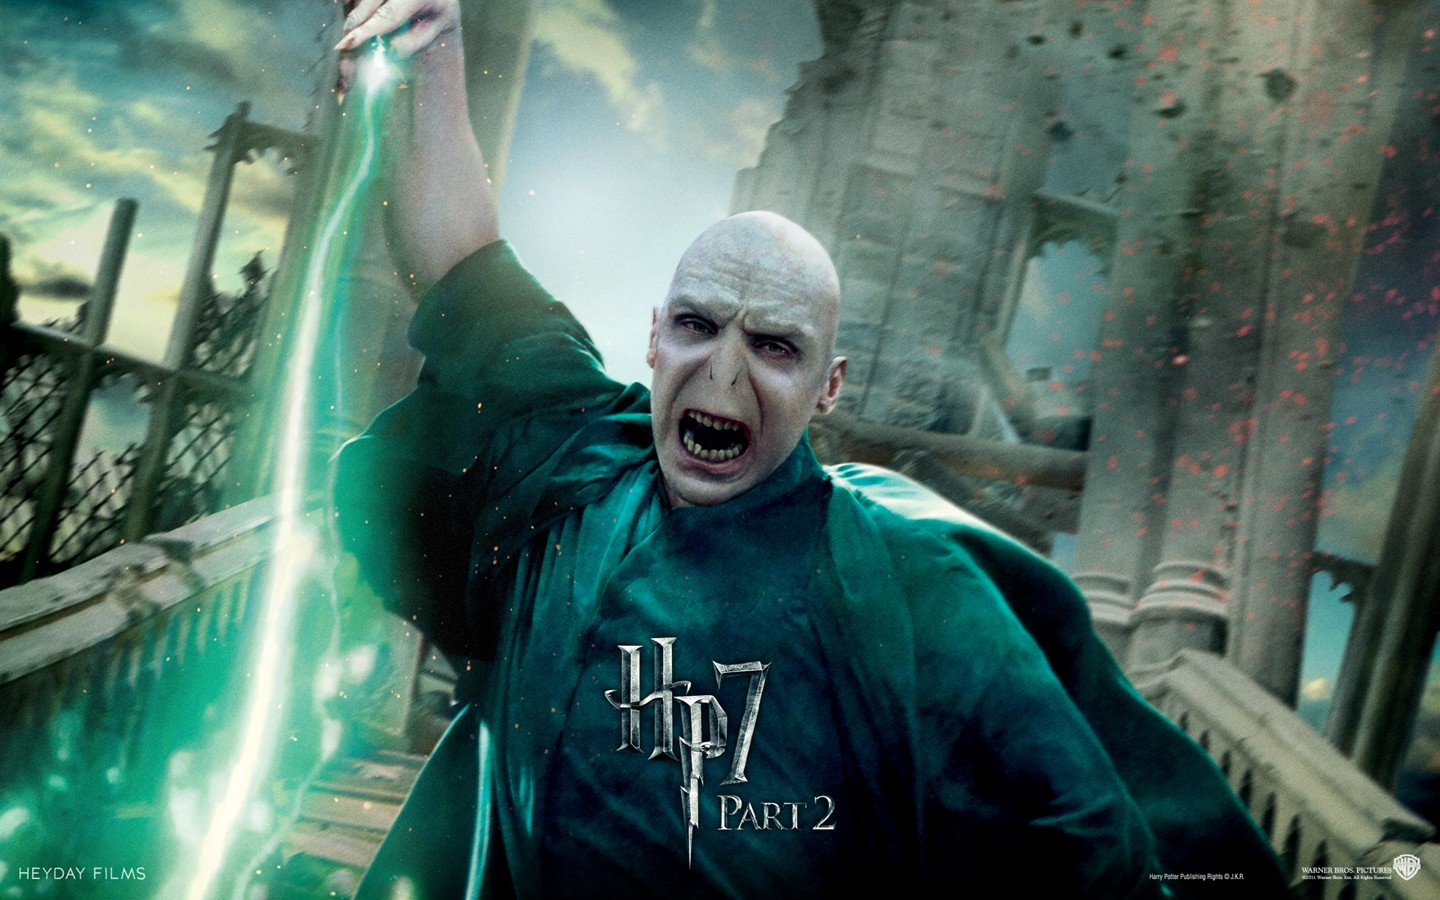 Harry & #; Potter and the Deathly Hallows (the) 29937